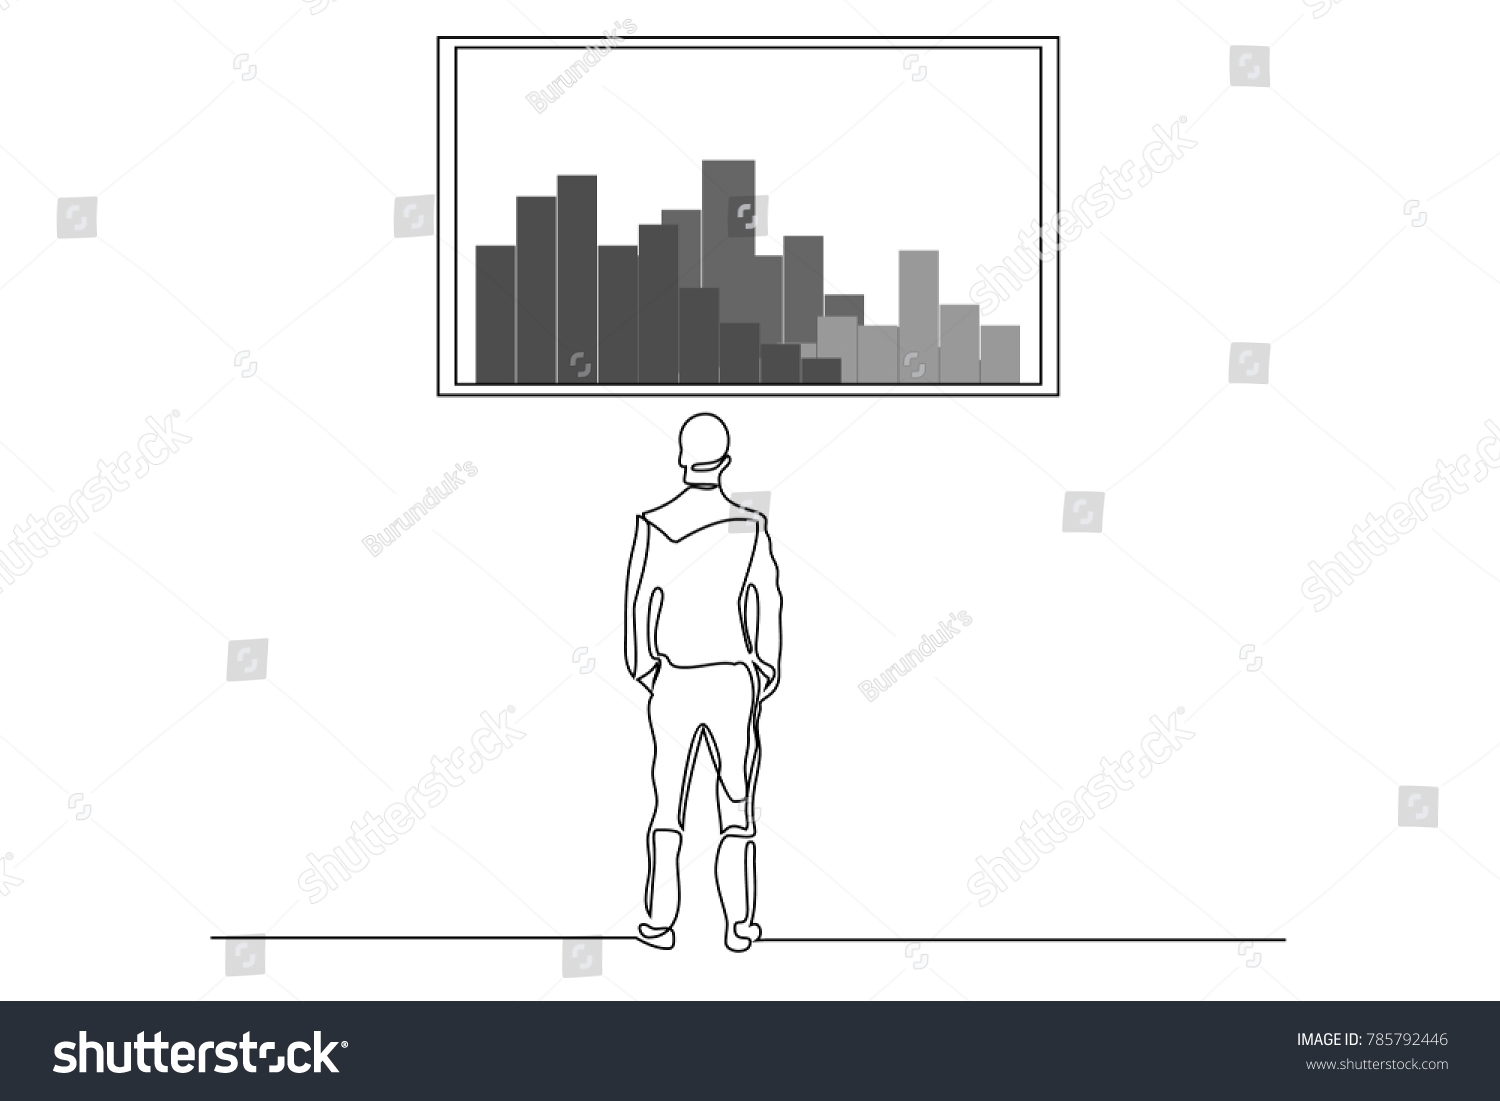 Single Line Text Art : Drawing one line man looking out stock vector  shutterstock